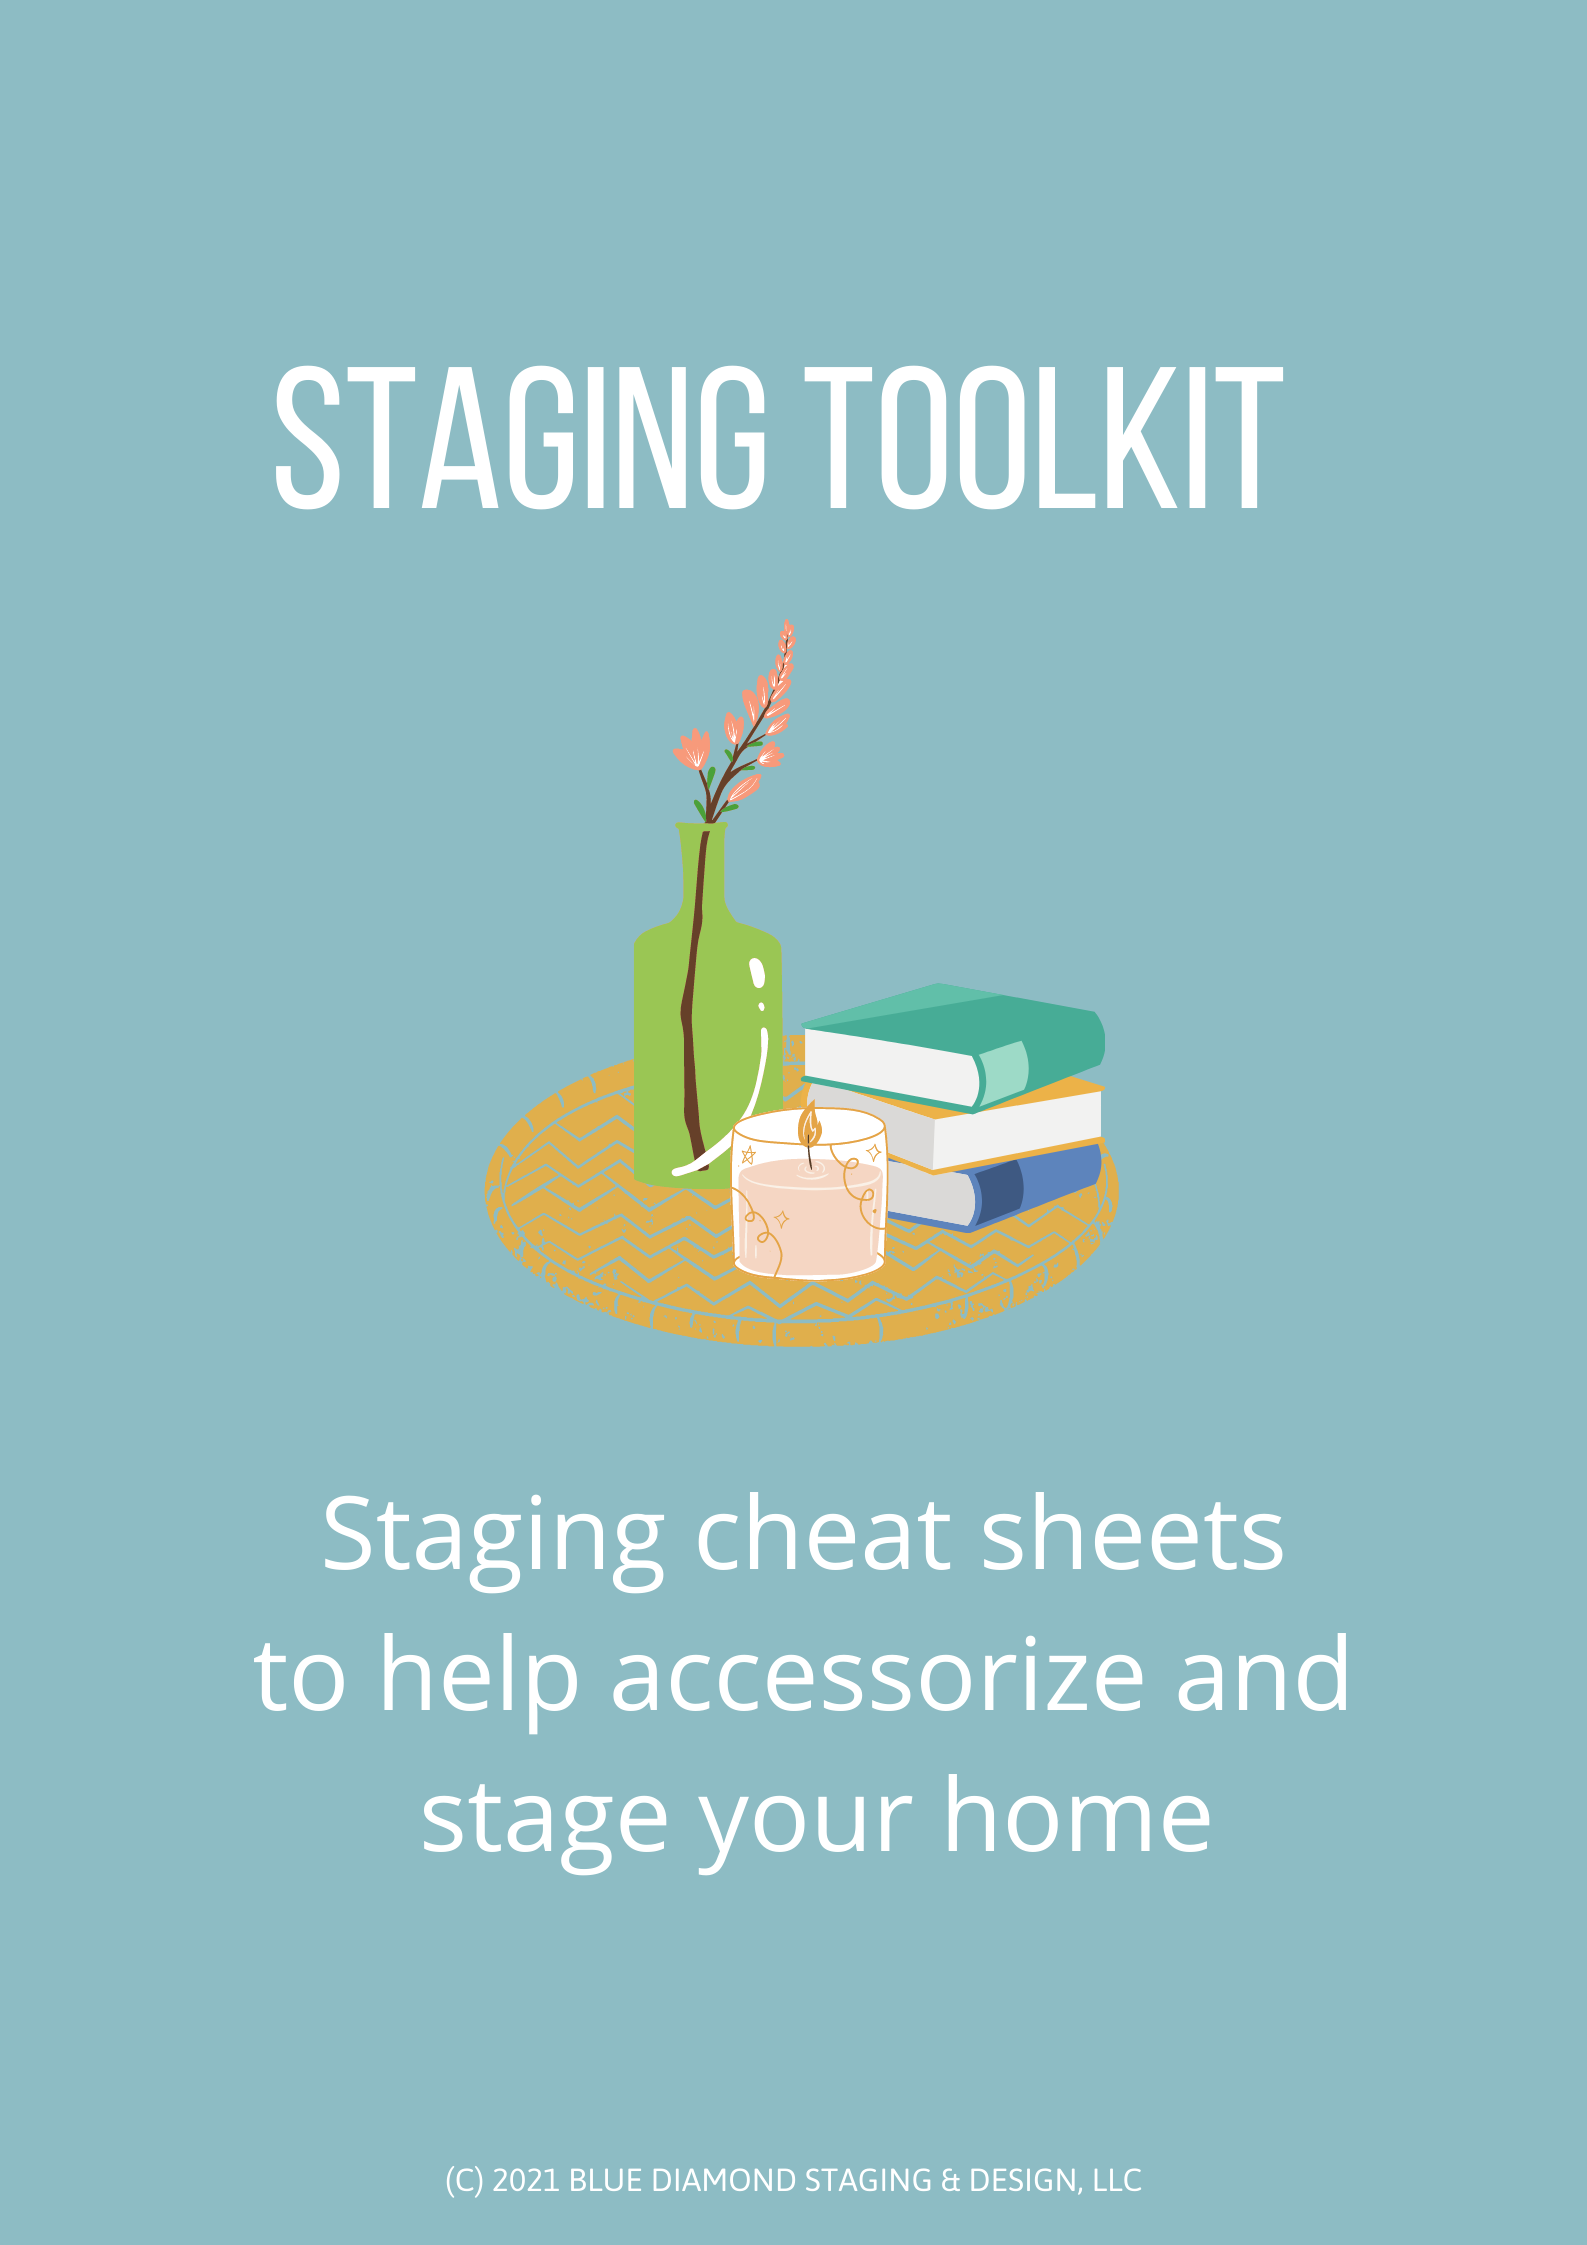 Staging Toolkit